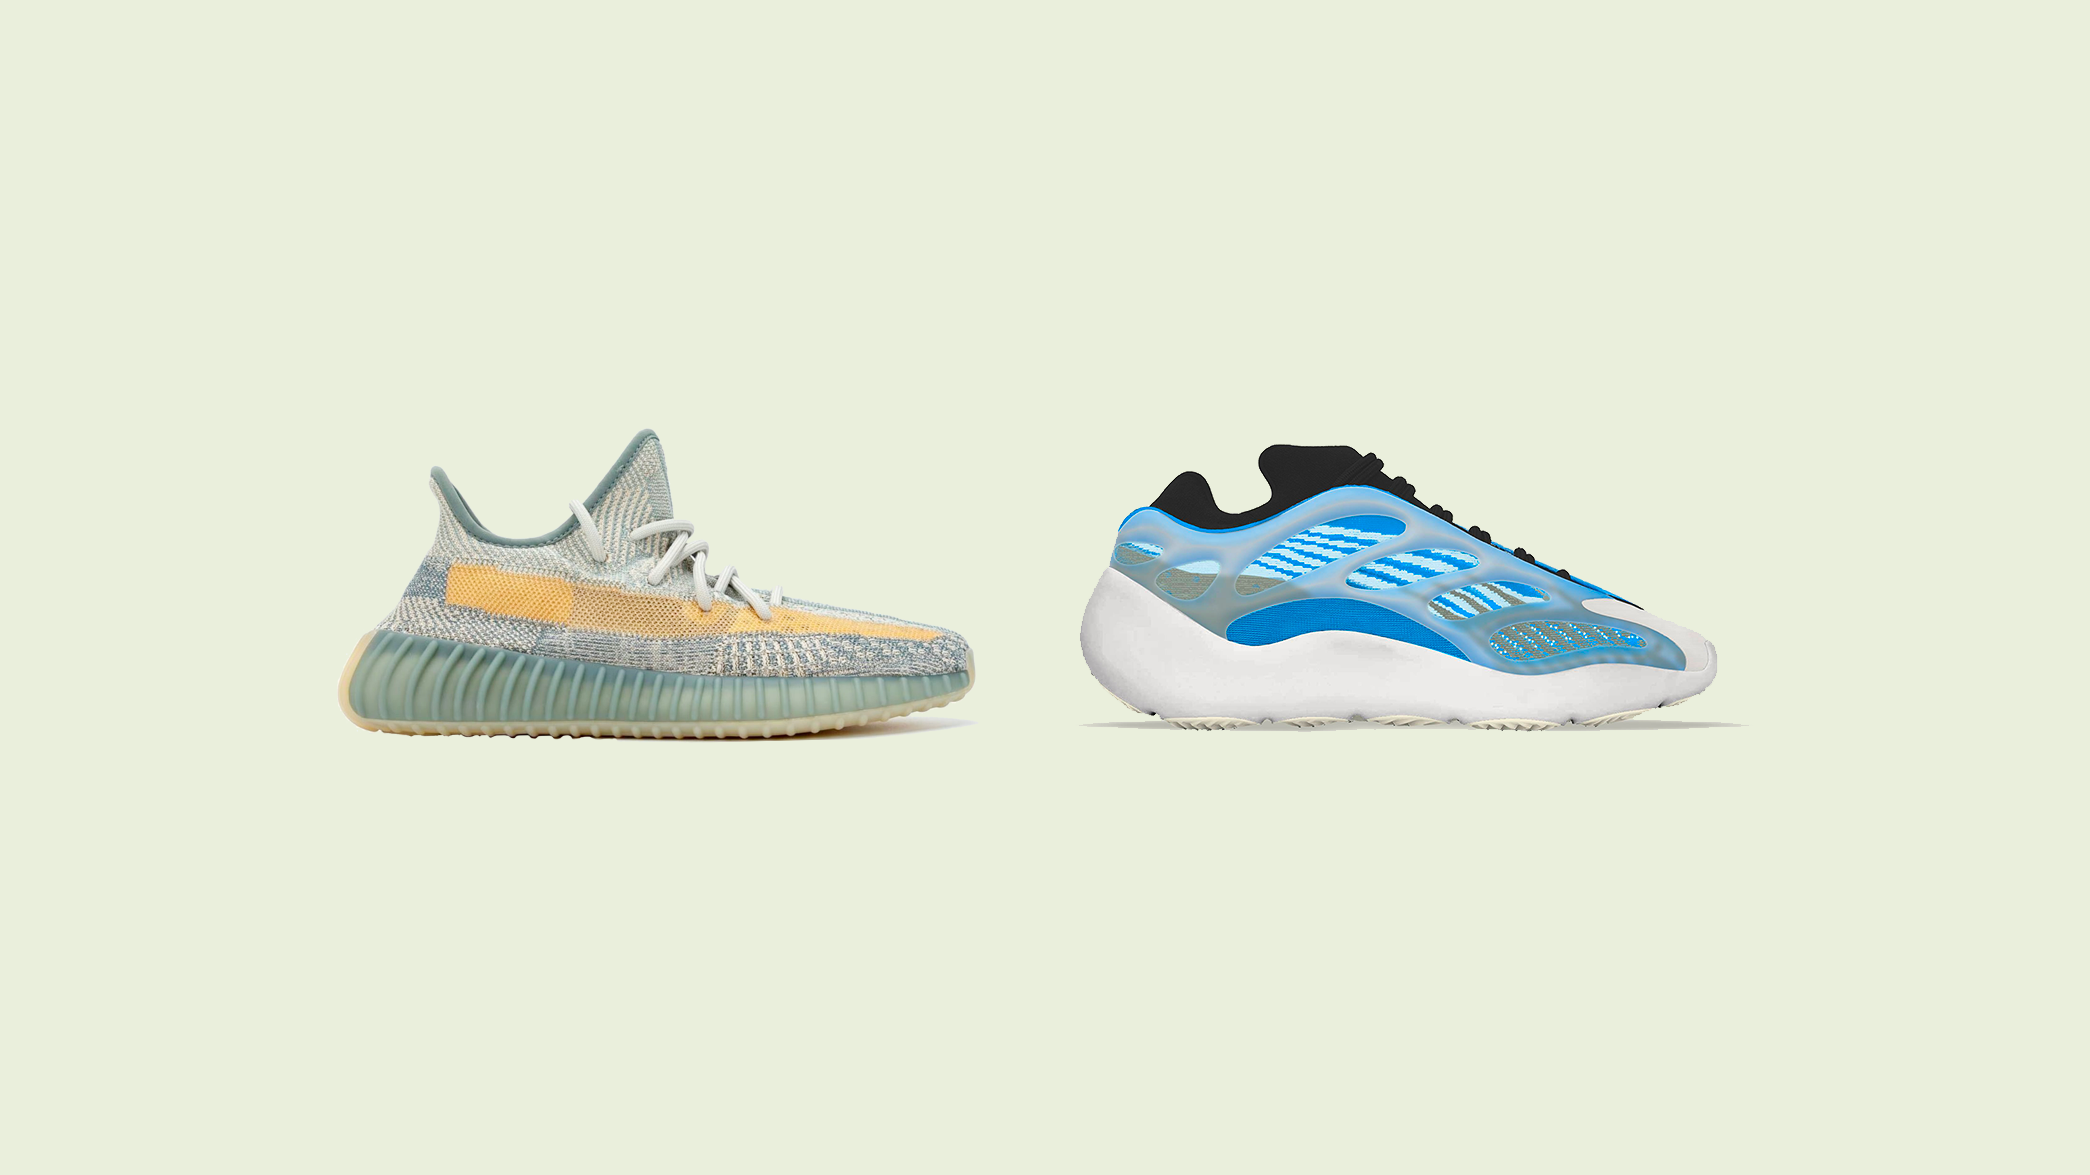 YEEZY August 2020 Line Up & Release Dates